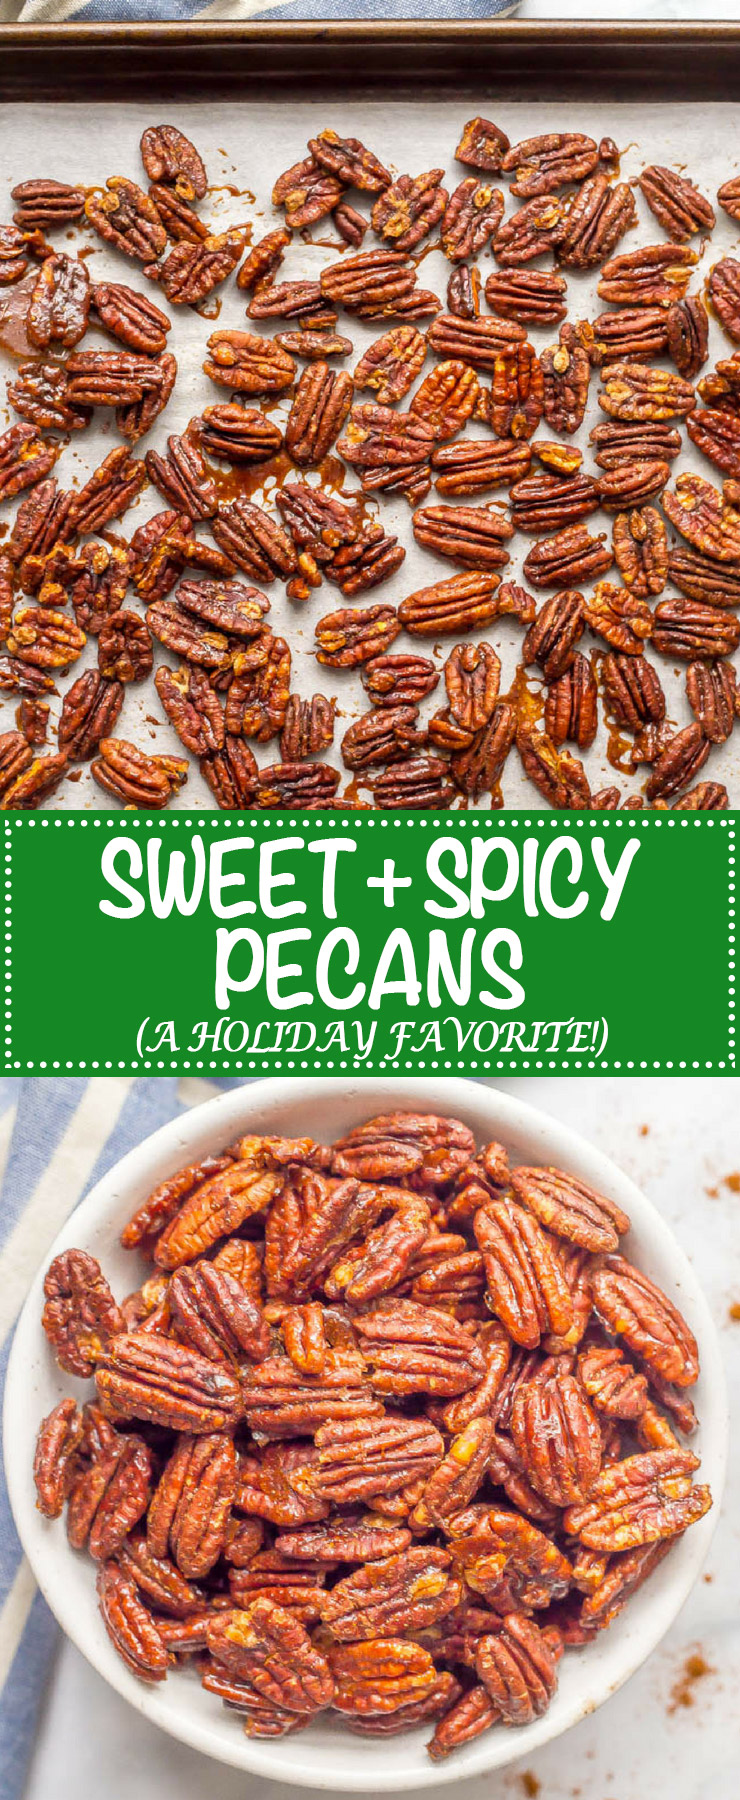 Sweet and spicy pecans with maple syrup are perfectly balanced with salty-sweet flavors and a little heat on the end. They're a holiday favorite! #holidayfood #roastednuts #christmasfood #snacking #pecans #healthysnack | www.familyfoodonthetable.com